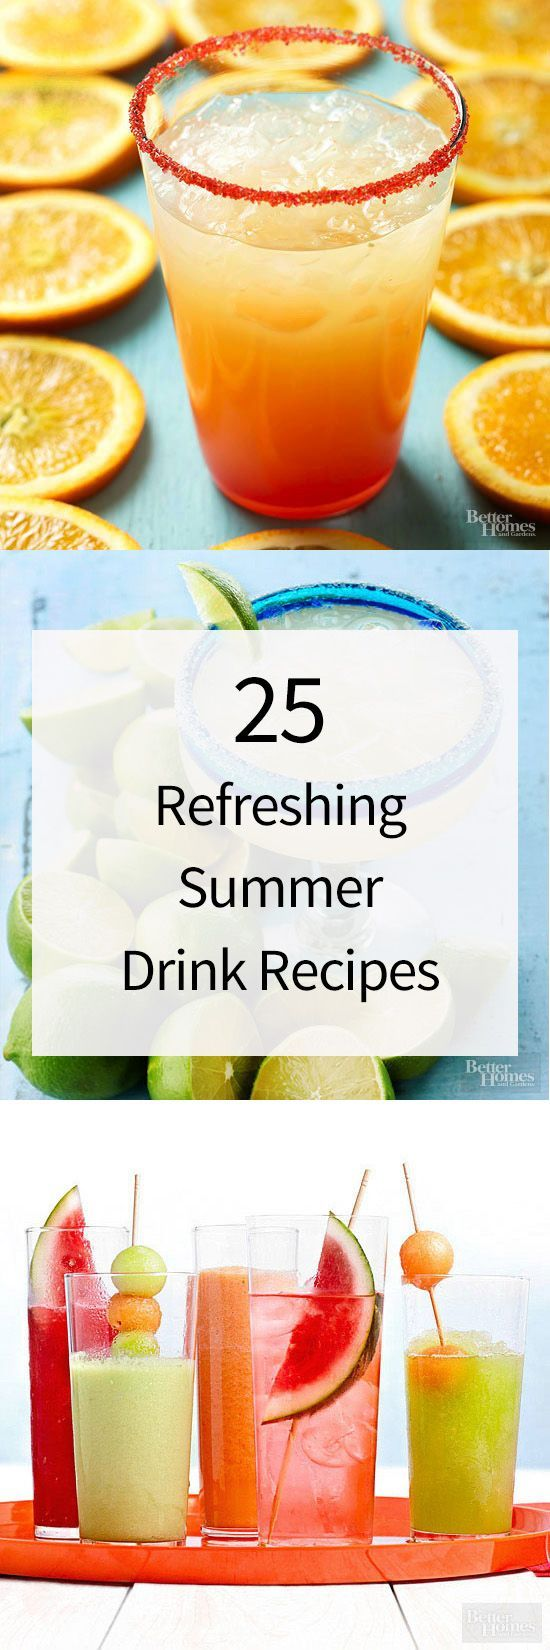 100 best images about drinks on pinterest non alcoholic for Refreshing drink recipes non alcoholic